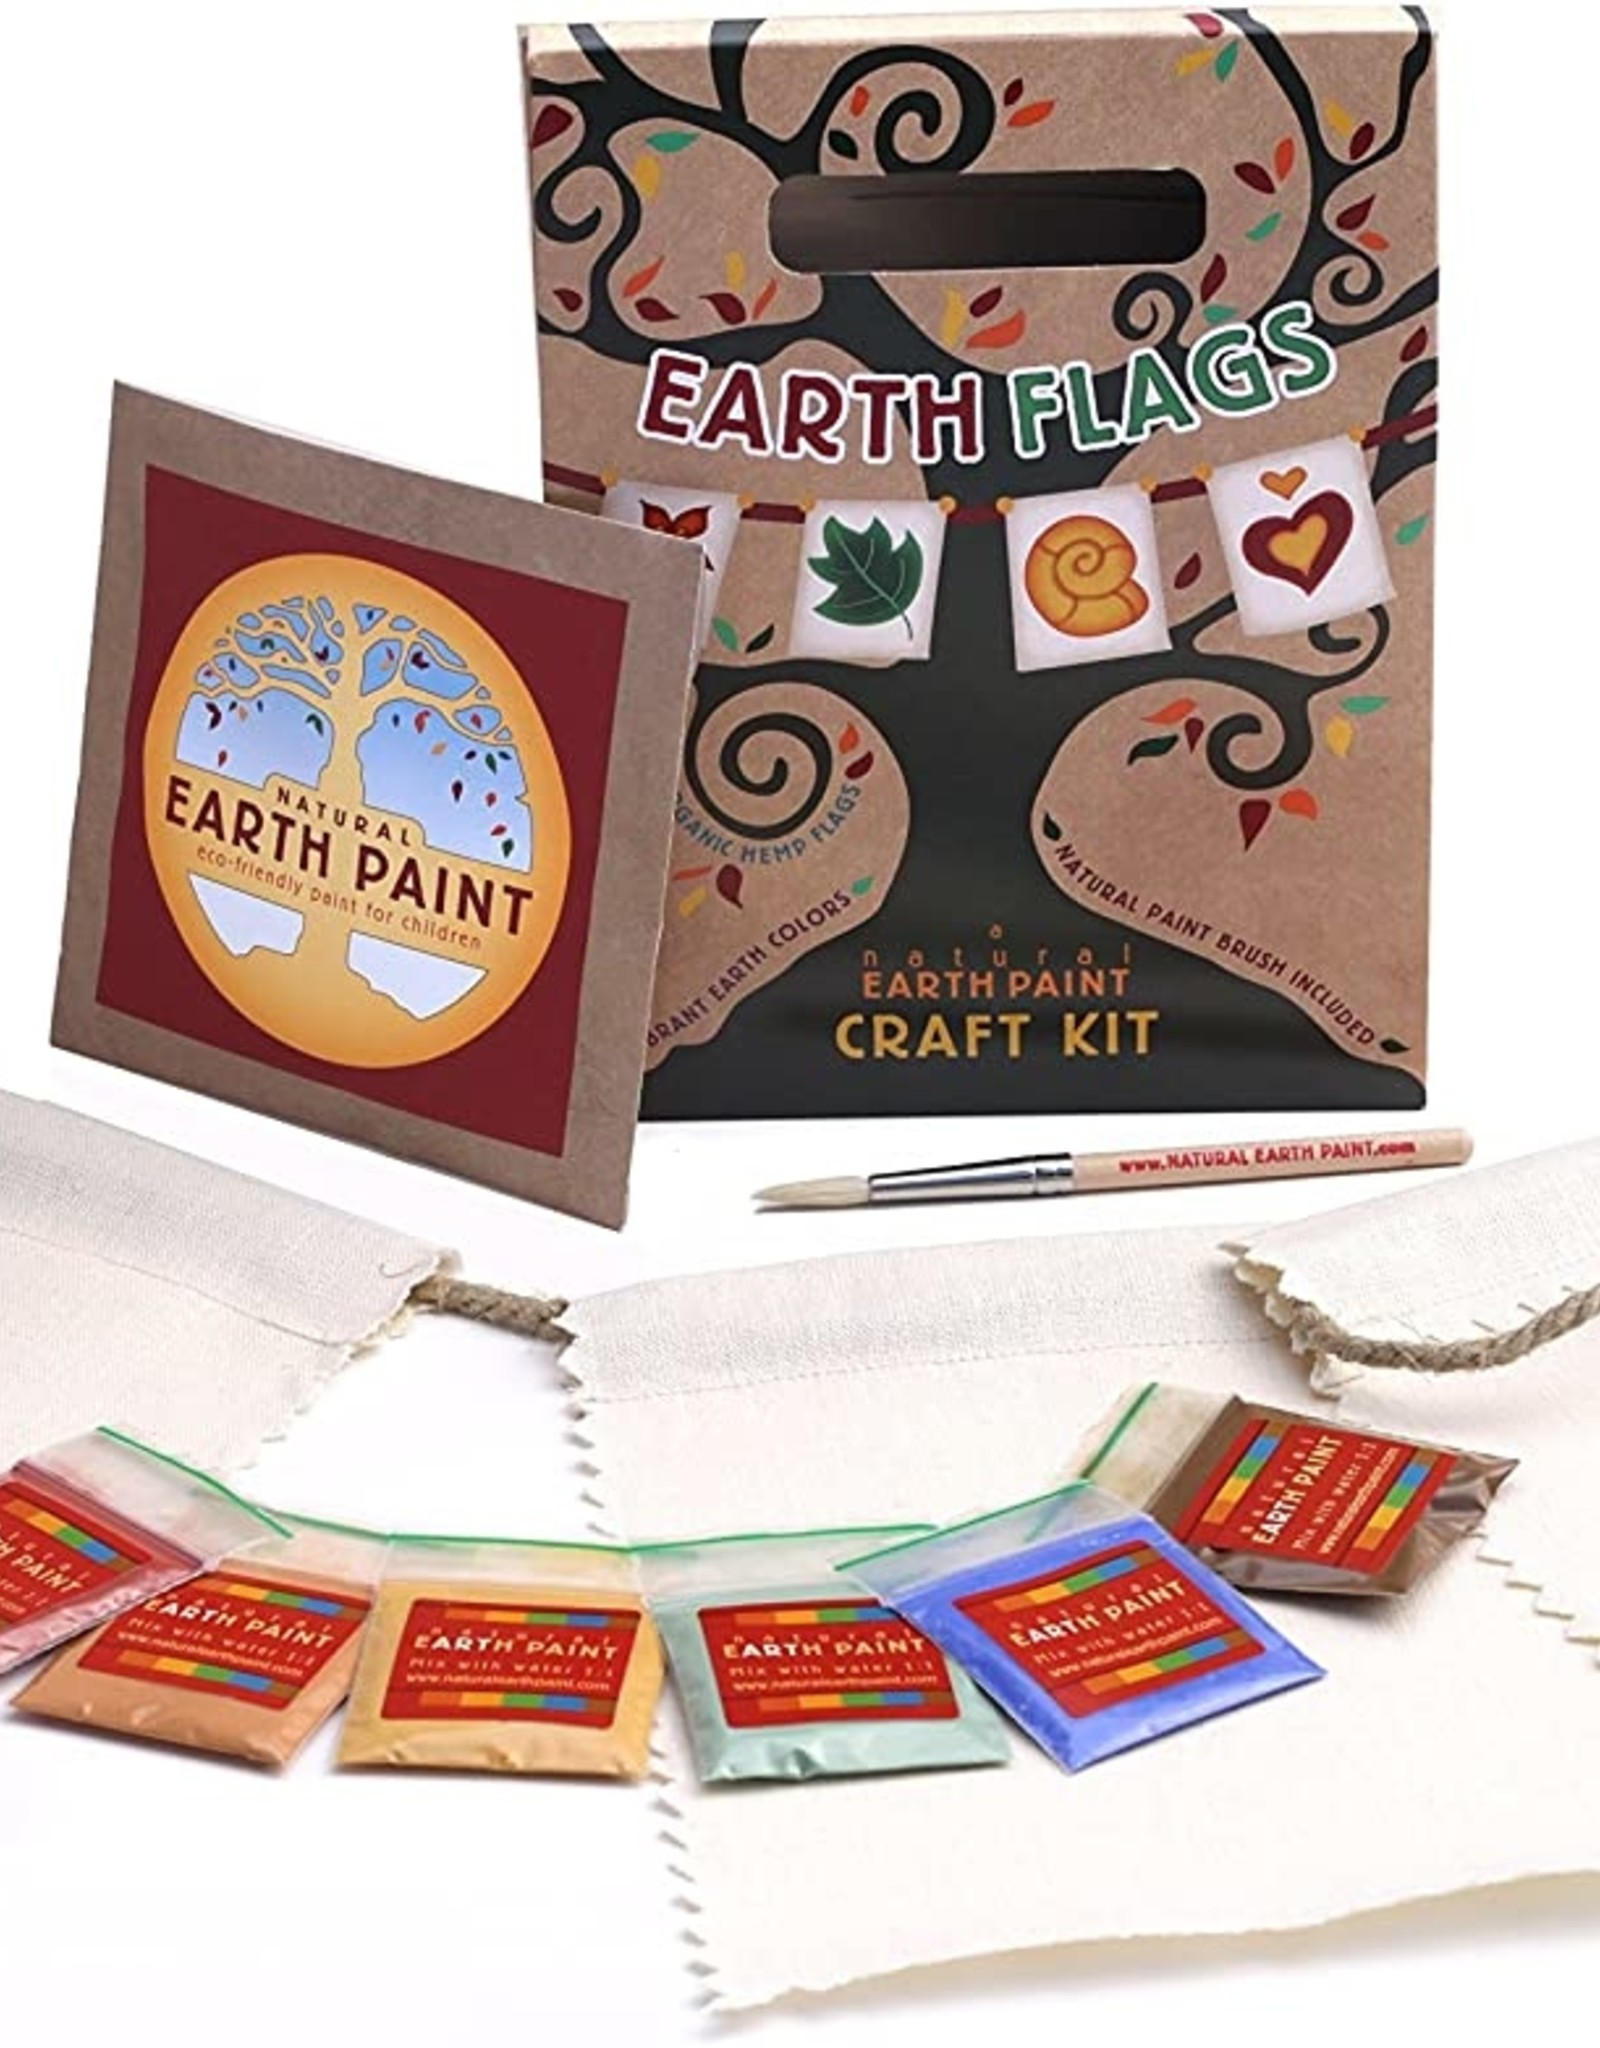 Natural Earth Paint Earth Flags Craft Kit